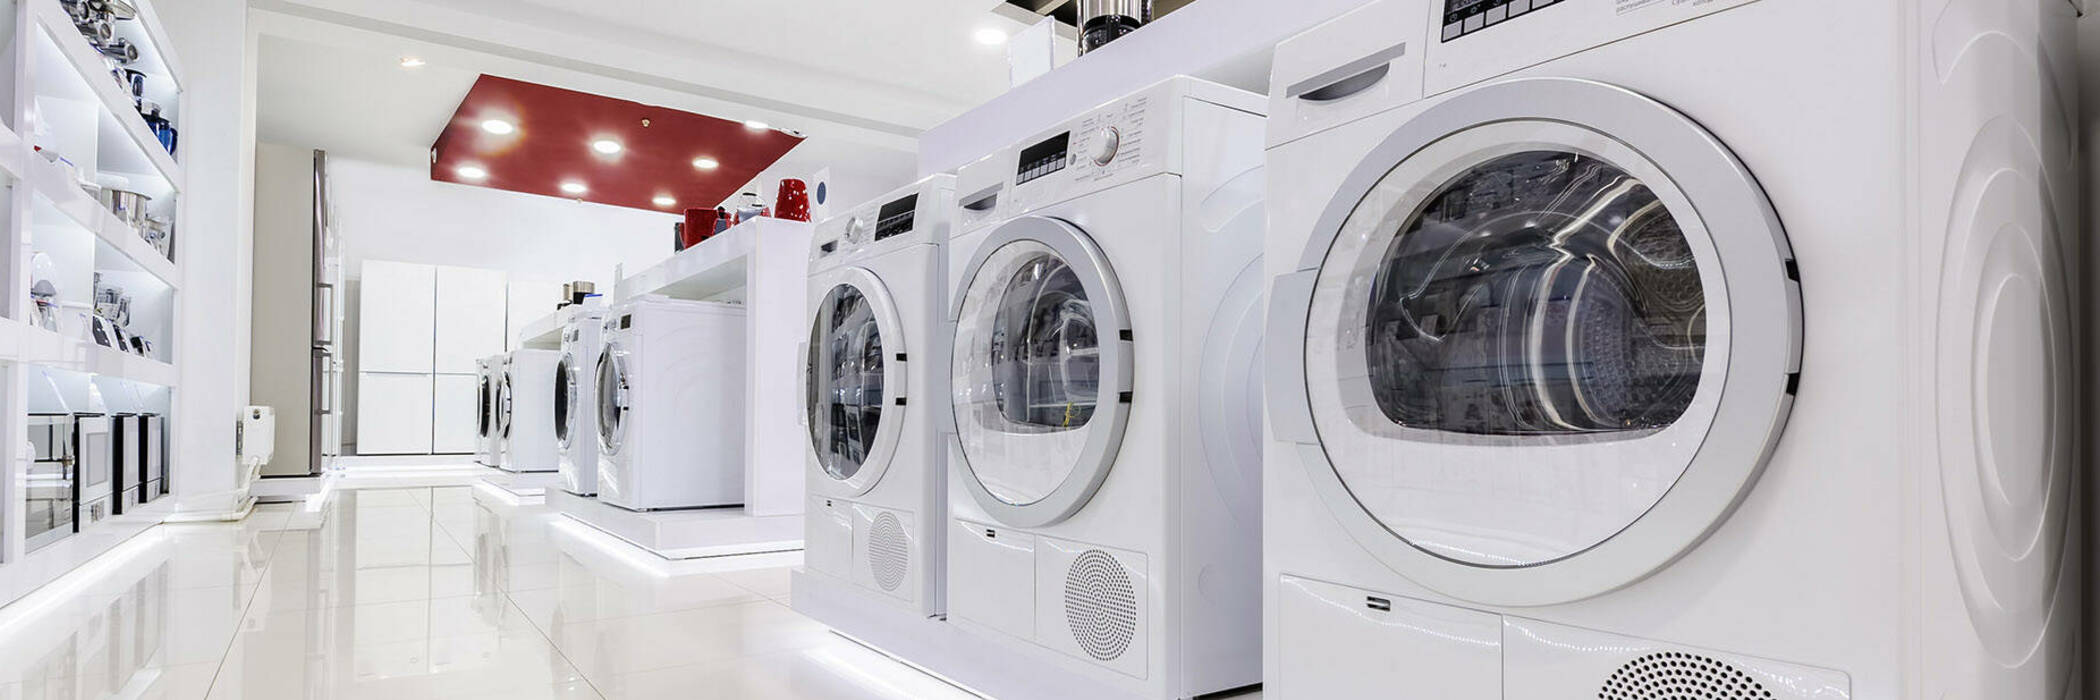 Front-loader washing machines in appliance store.